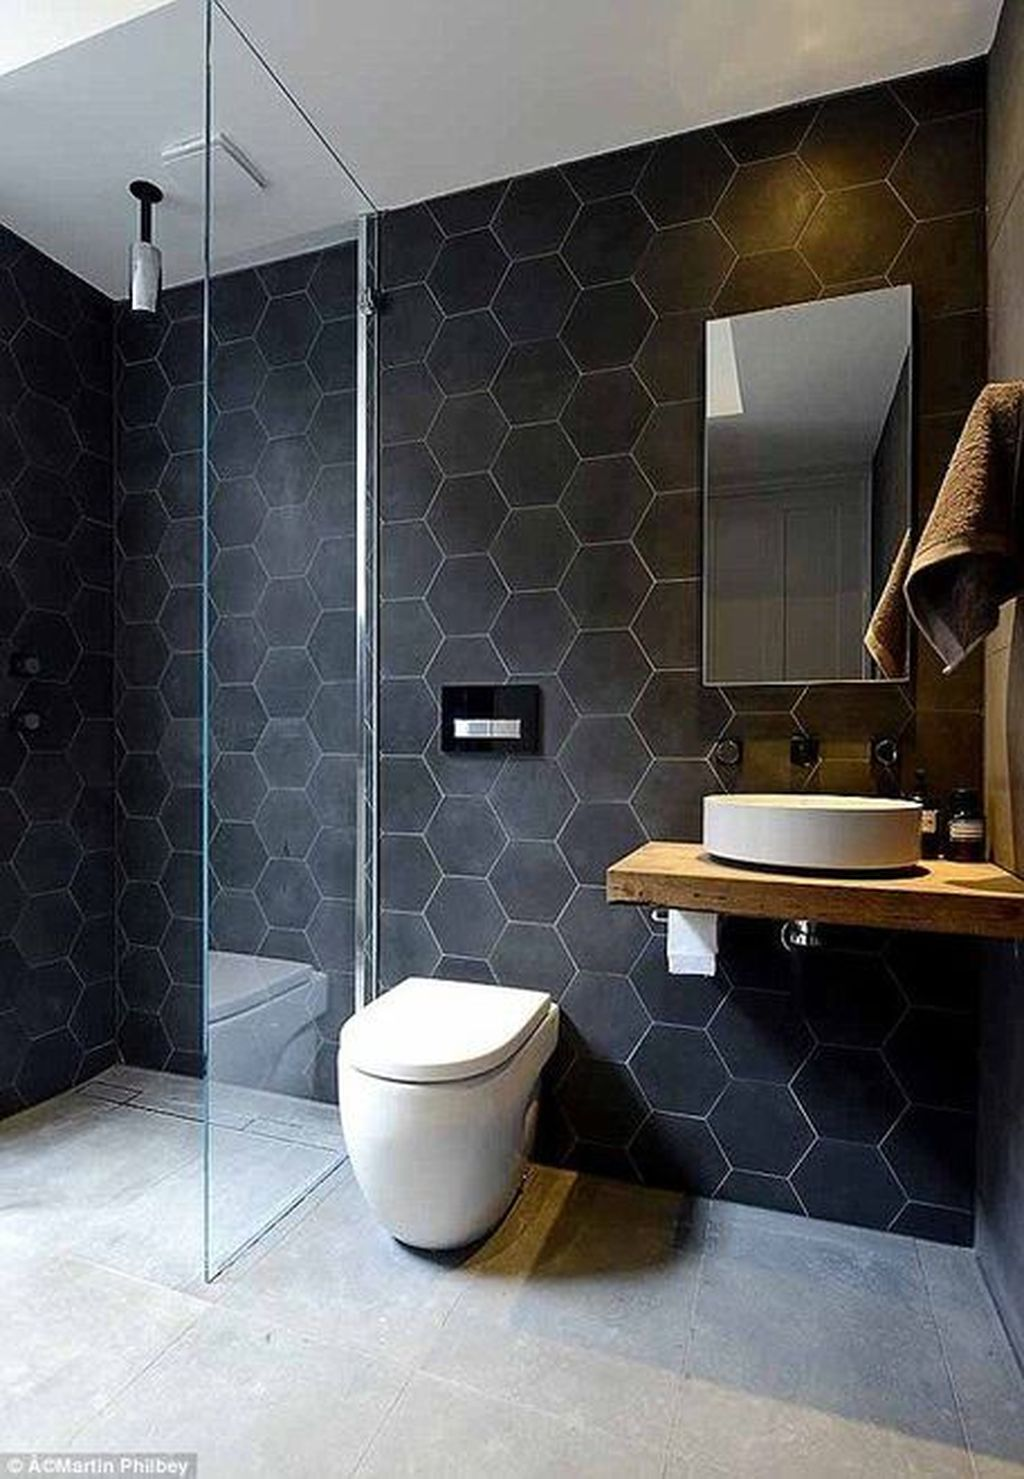 The Best Stone Tile Bathroom Ideas To Decorate Your Bathroom 16